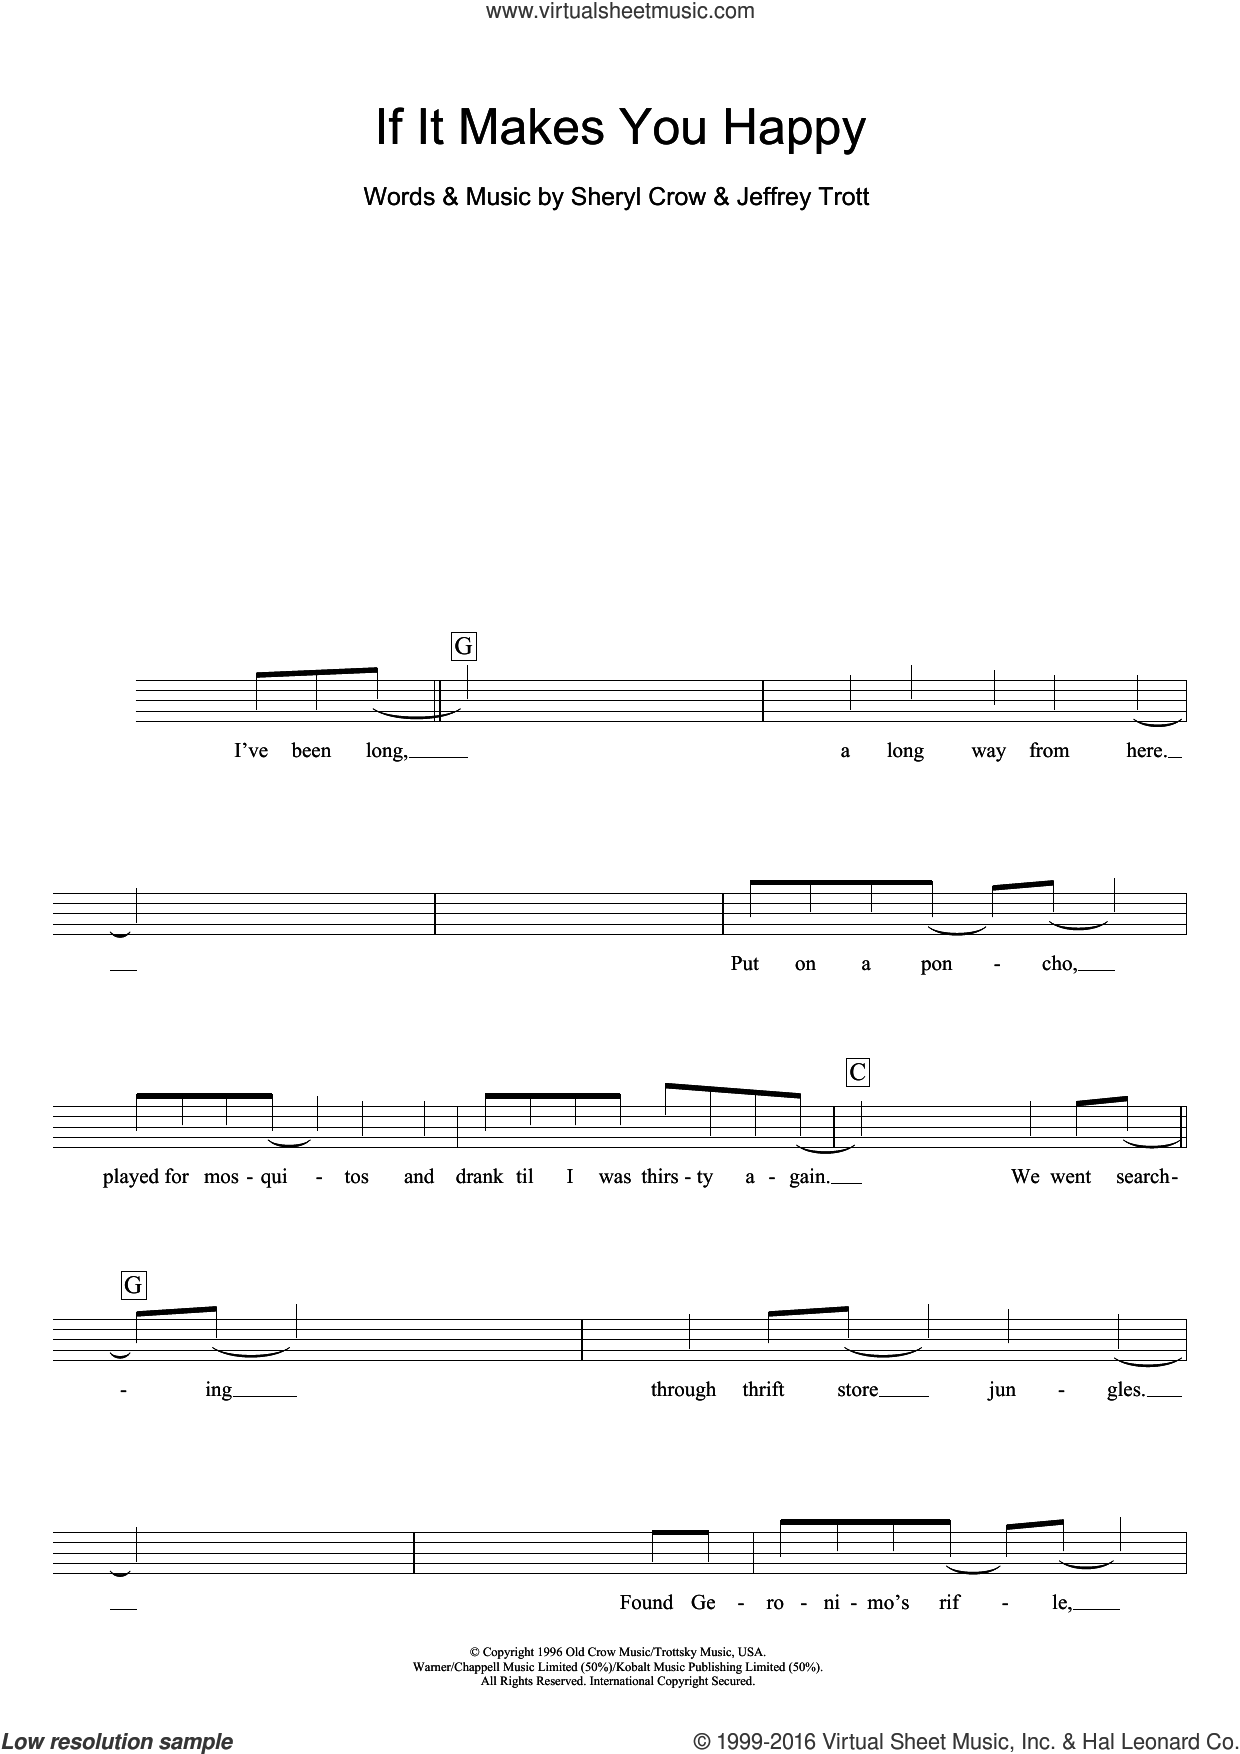 If It Makes You Happy sheet music for voice and other instruments (fake book) by Sheryl Crow and Jeff Trott, intermediate skill level